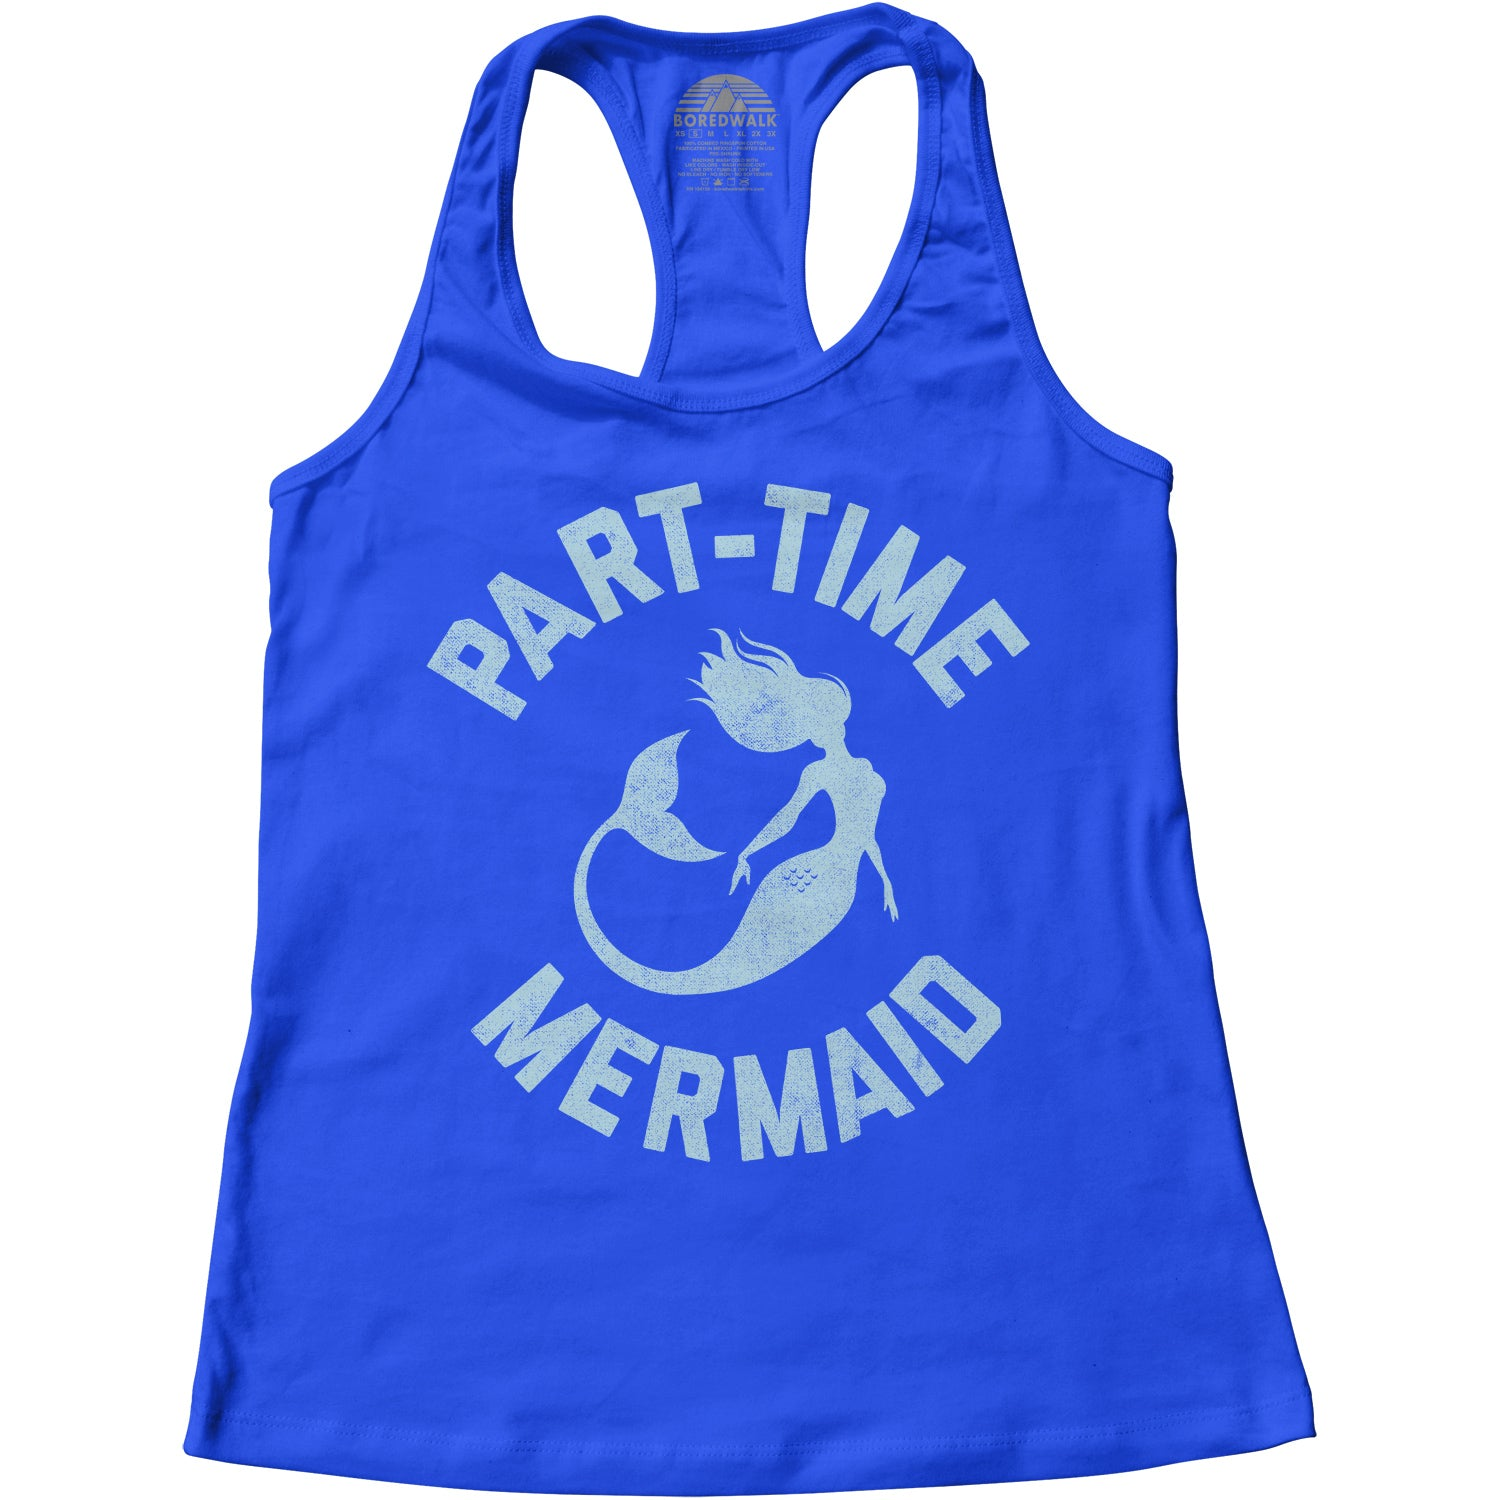 Women's Part Time Mermaid Racerback Tank Top